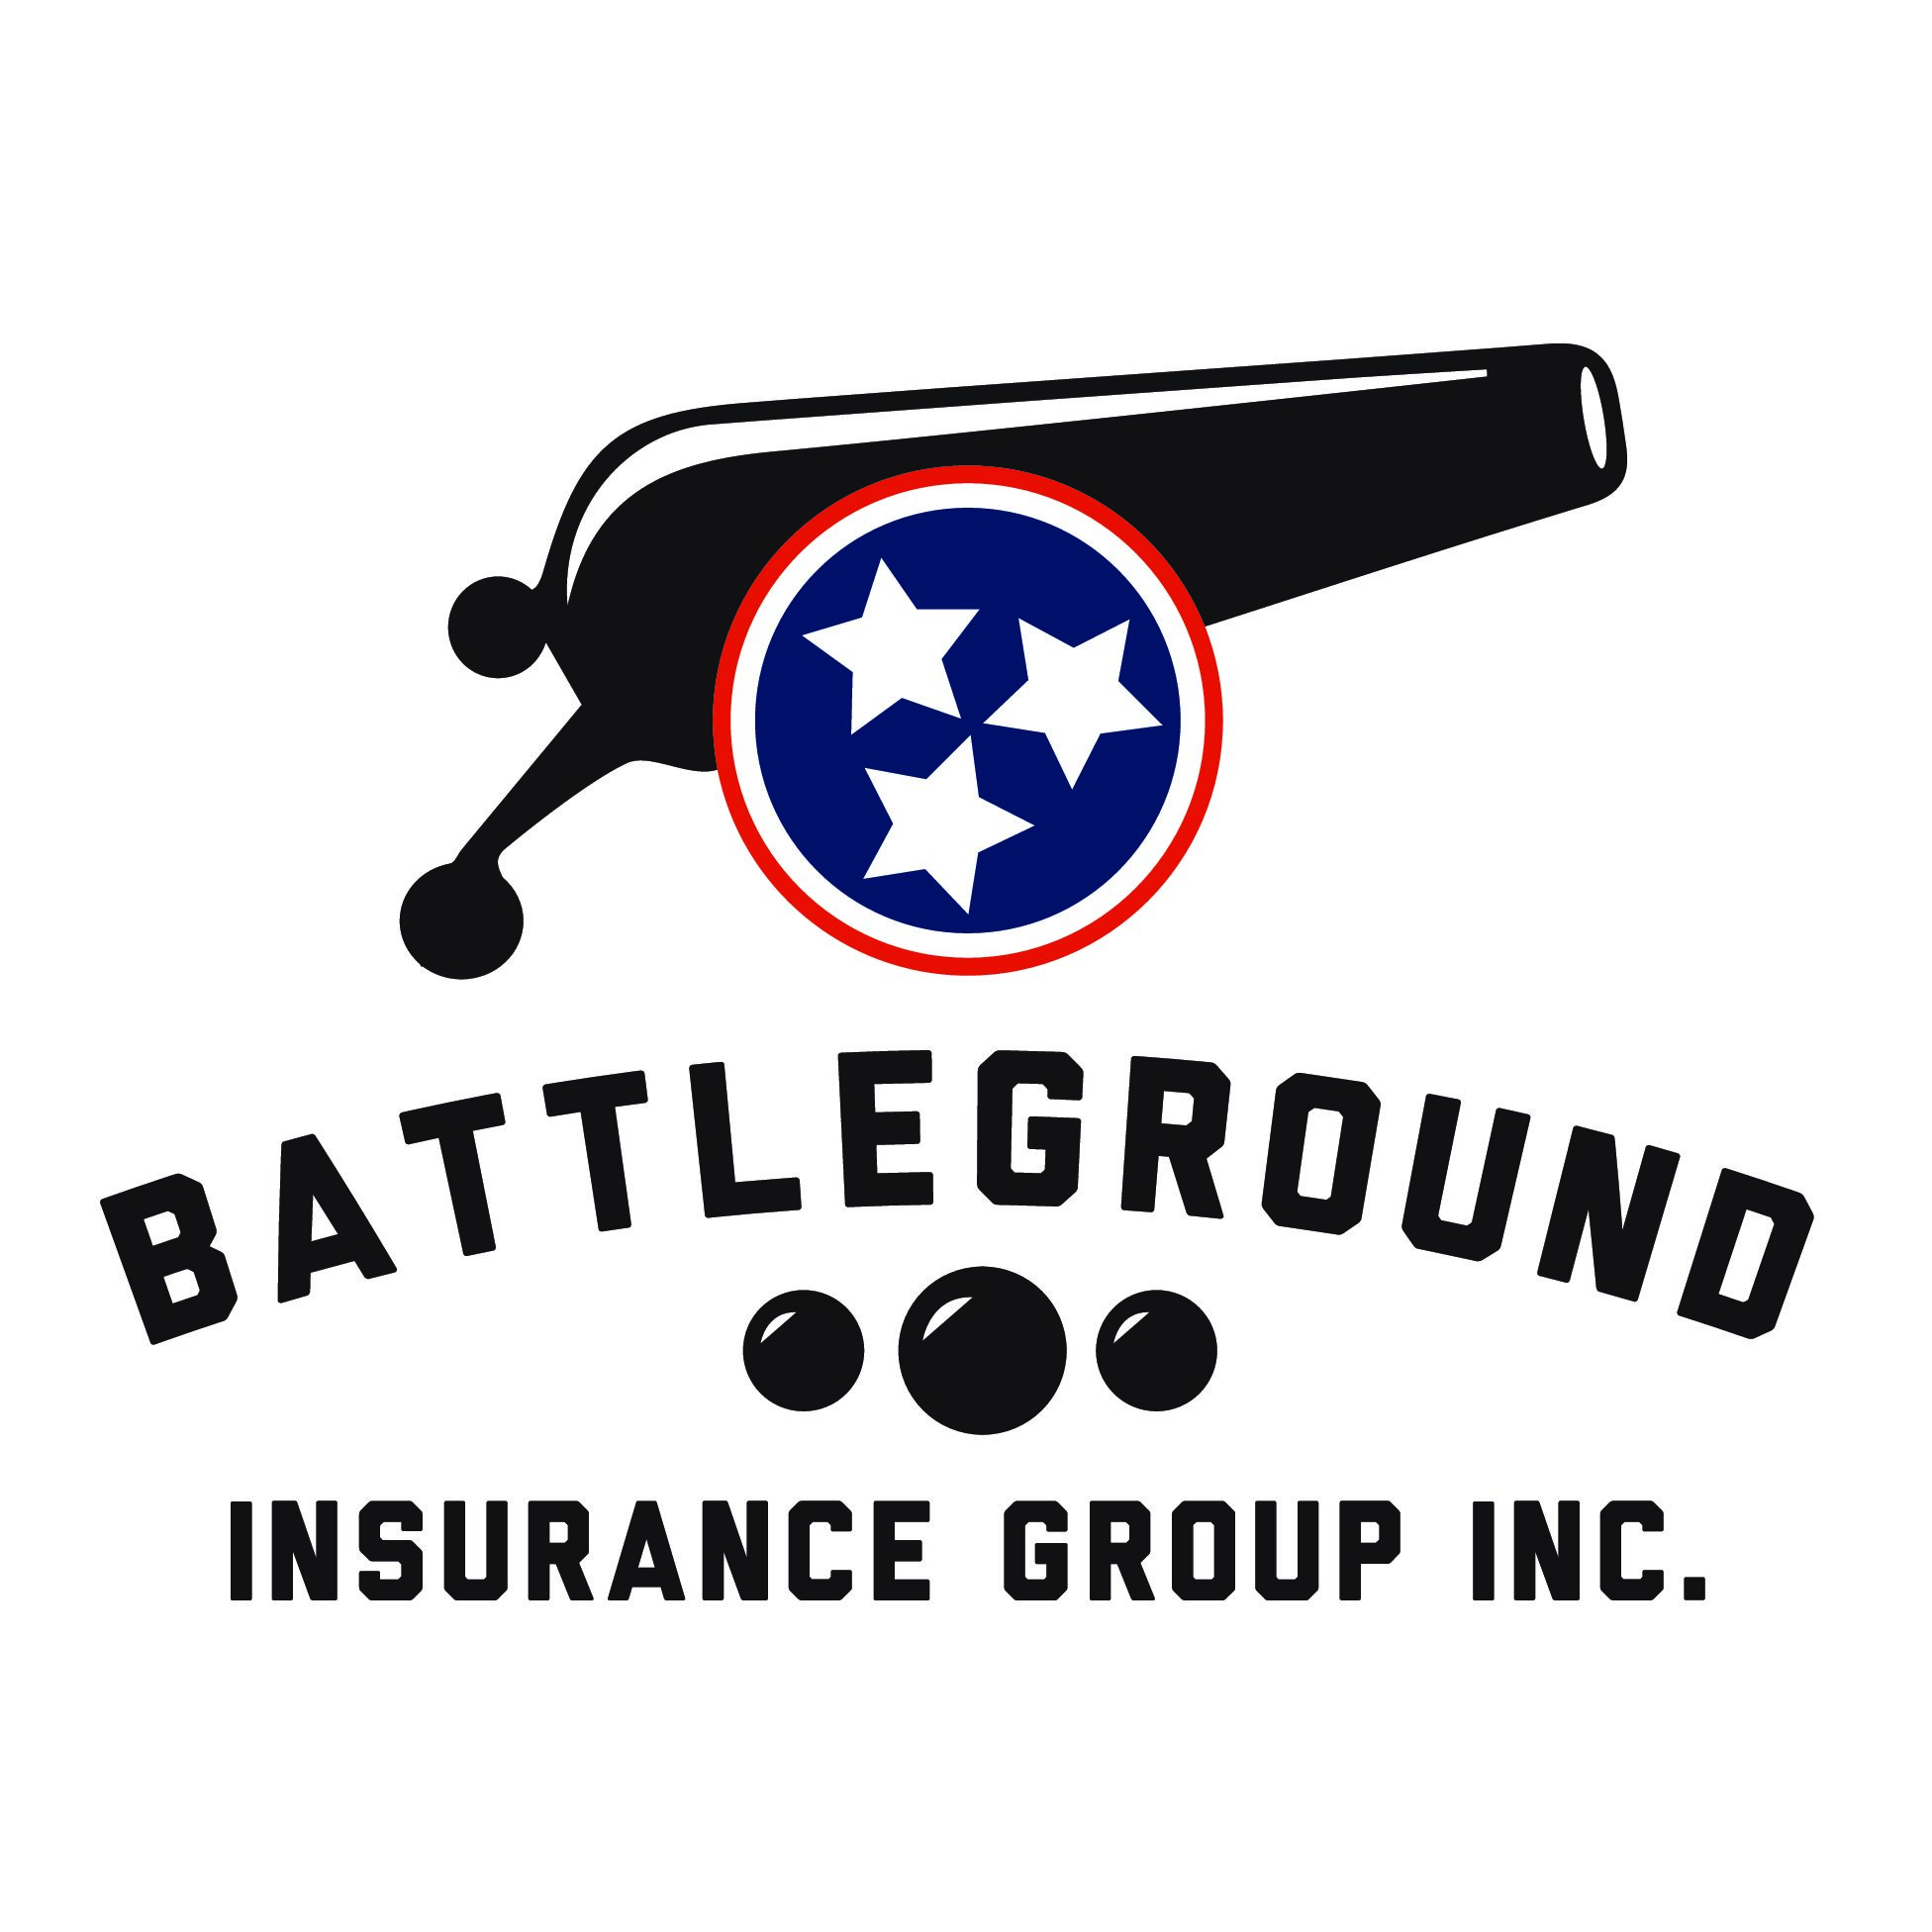 battleground-ins-gp